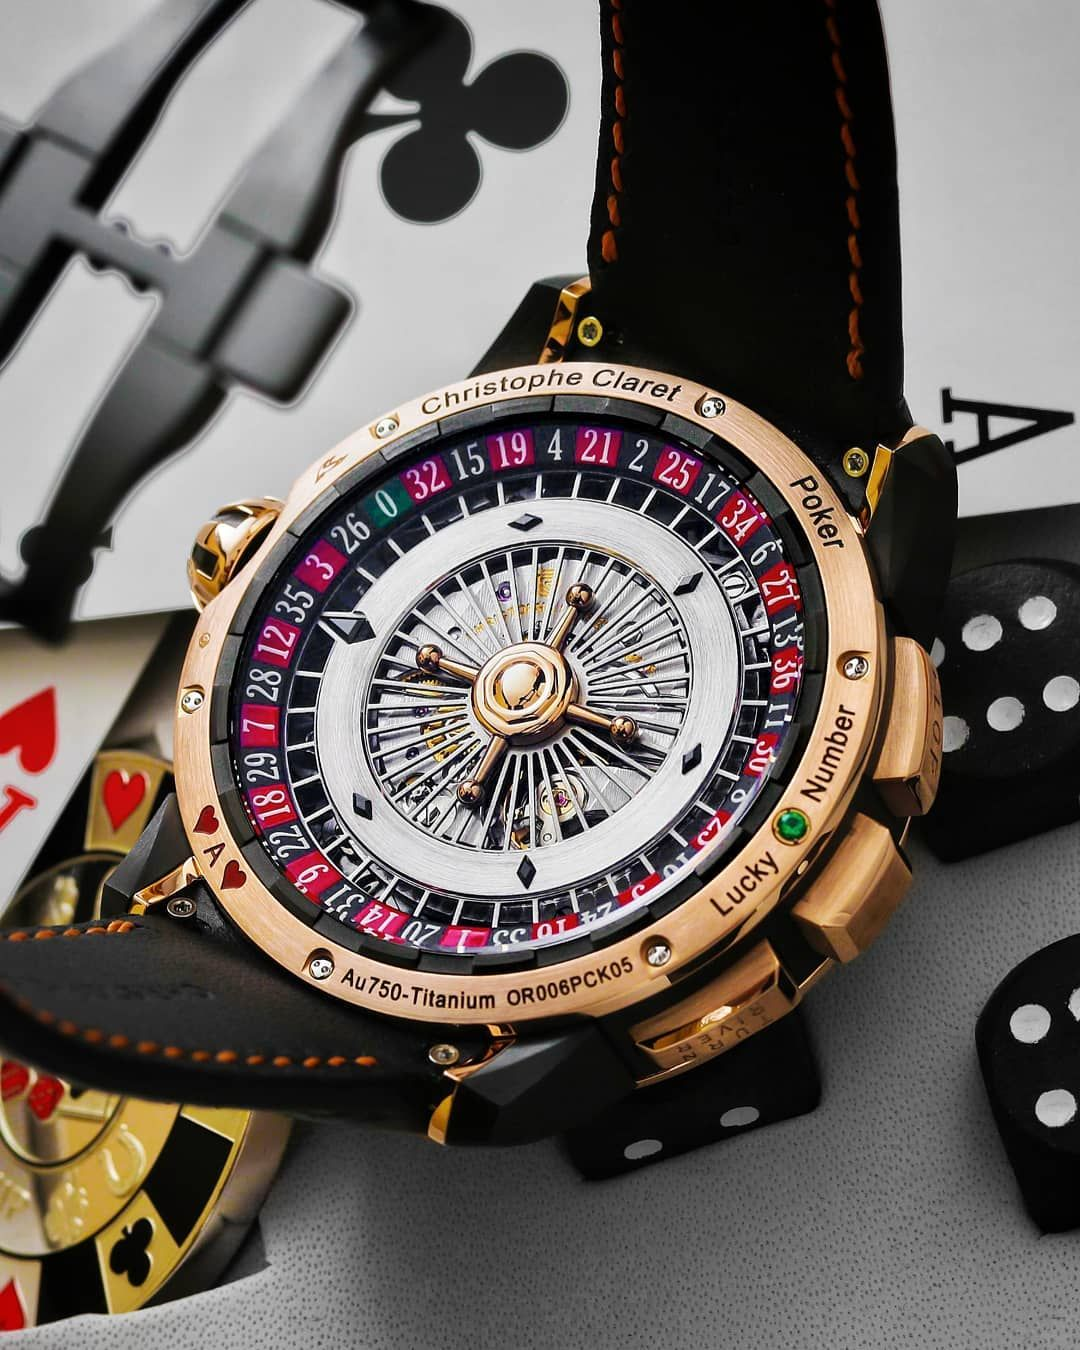 "ff260a8b2 Swiss Watch GangⓂ on Instagram: ""Casino on your wrist, the movement side of  the Christophe Claret Poker with a gorgeous spinning roulette table."